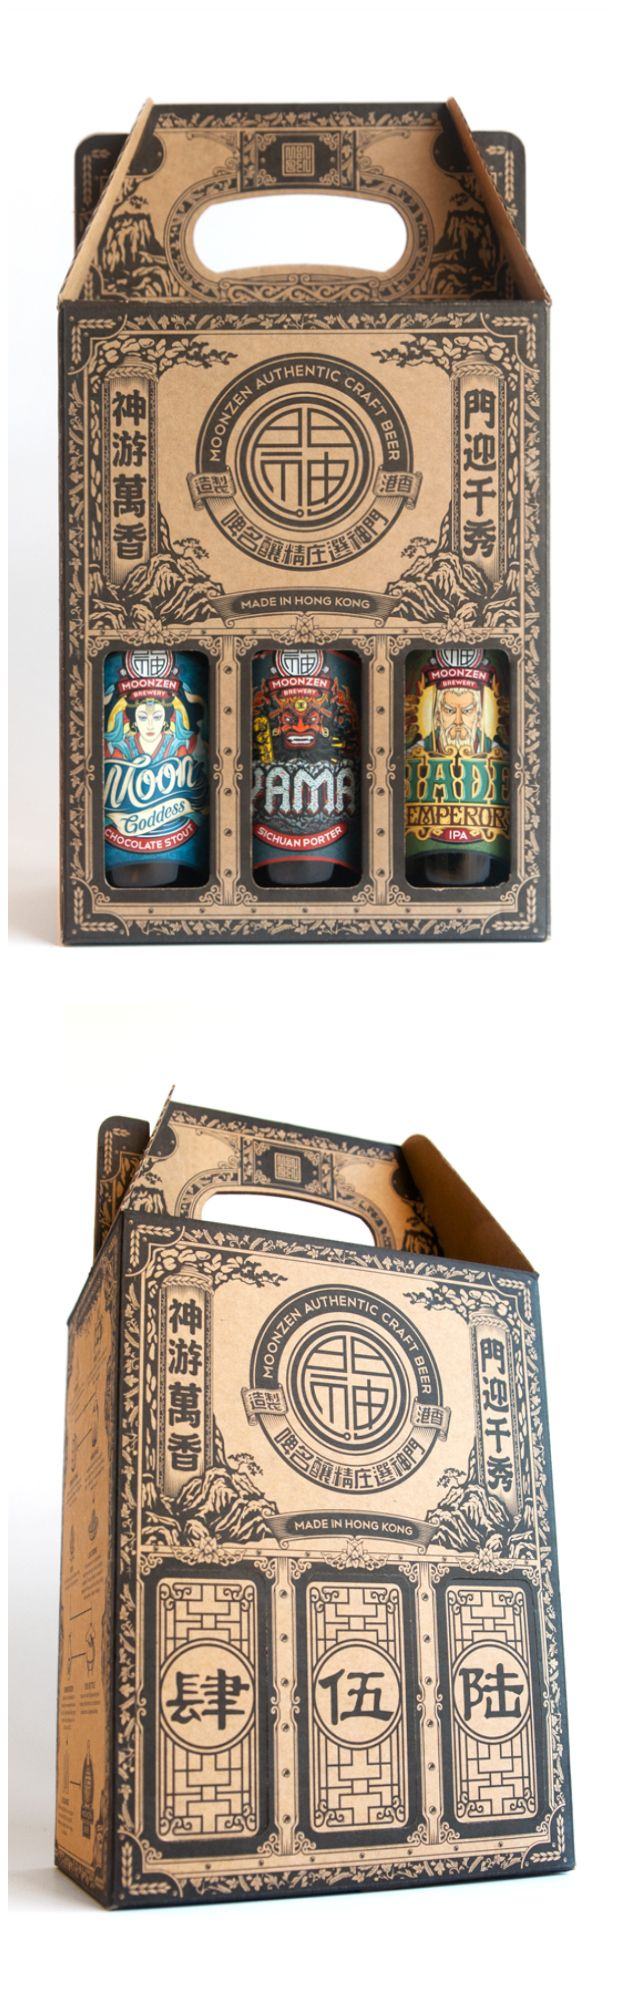 Treasure Chest Packaging Design Concept for Moonzen Craft #Beer Designed by Yosuke Ando Project name: Moonzen #Packaging Category: Entertainment